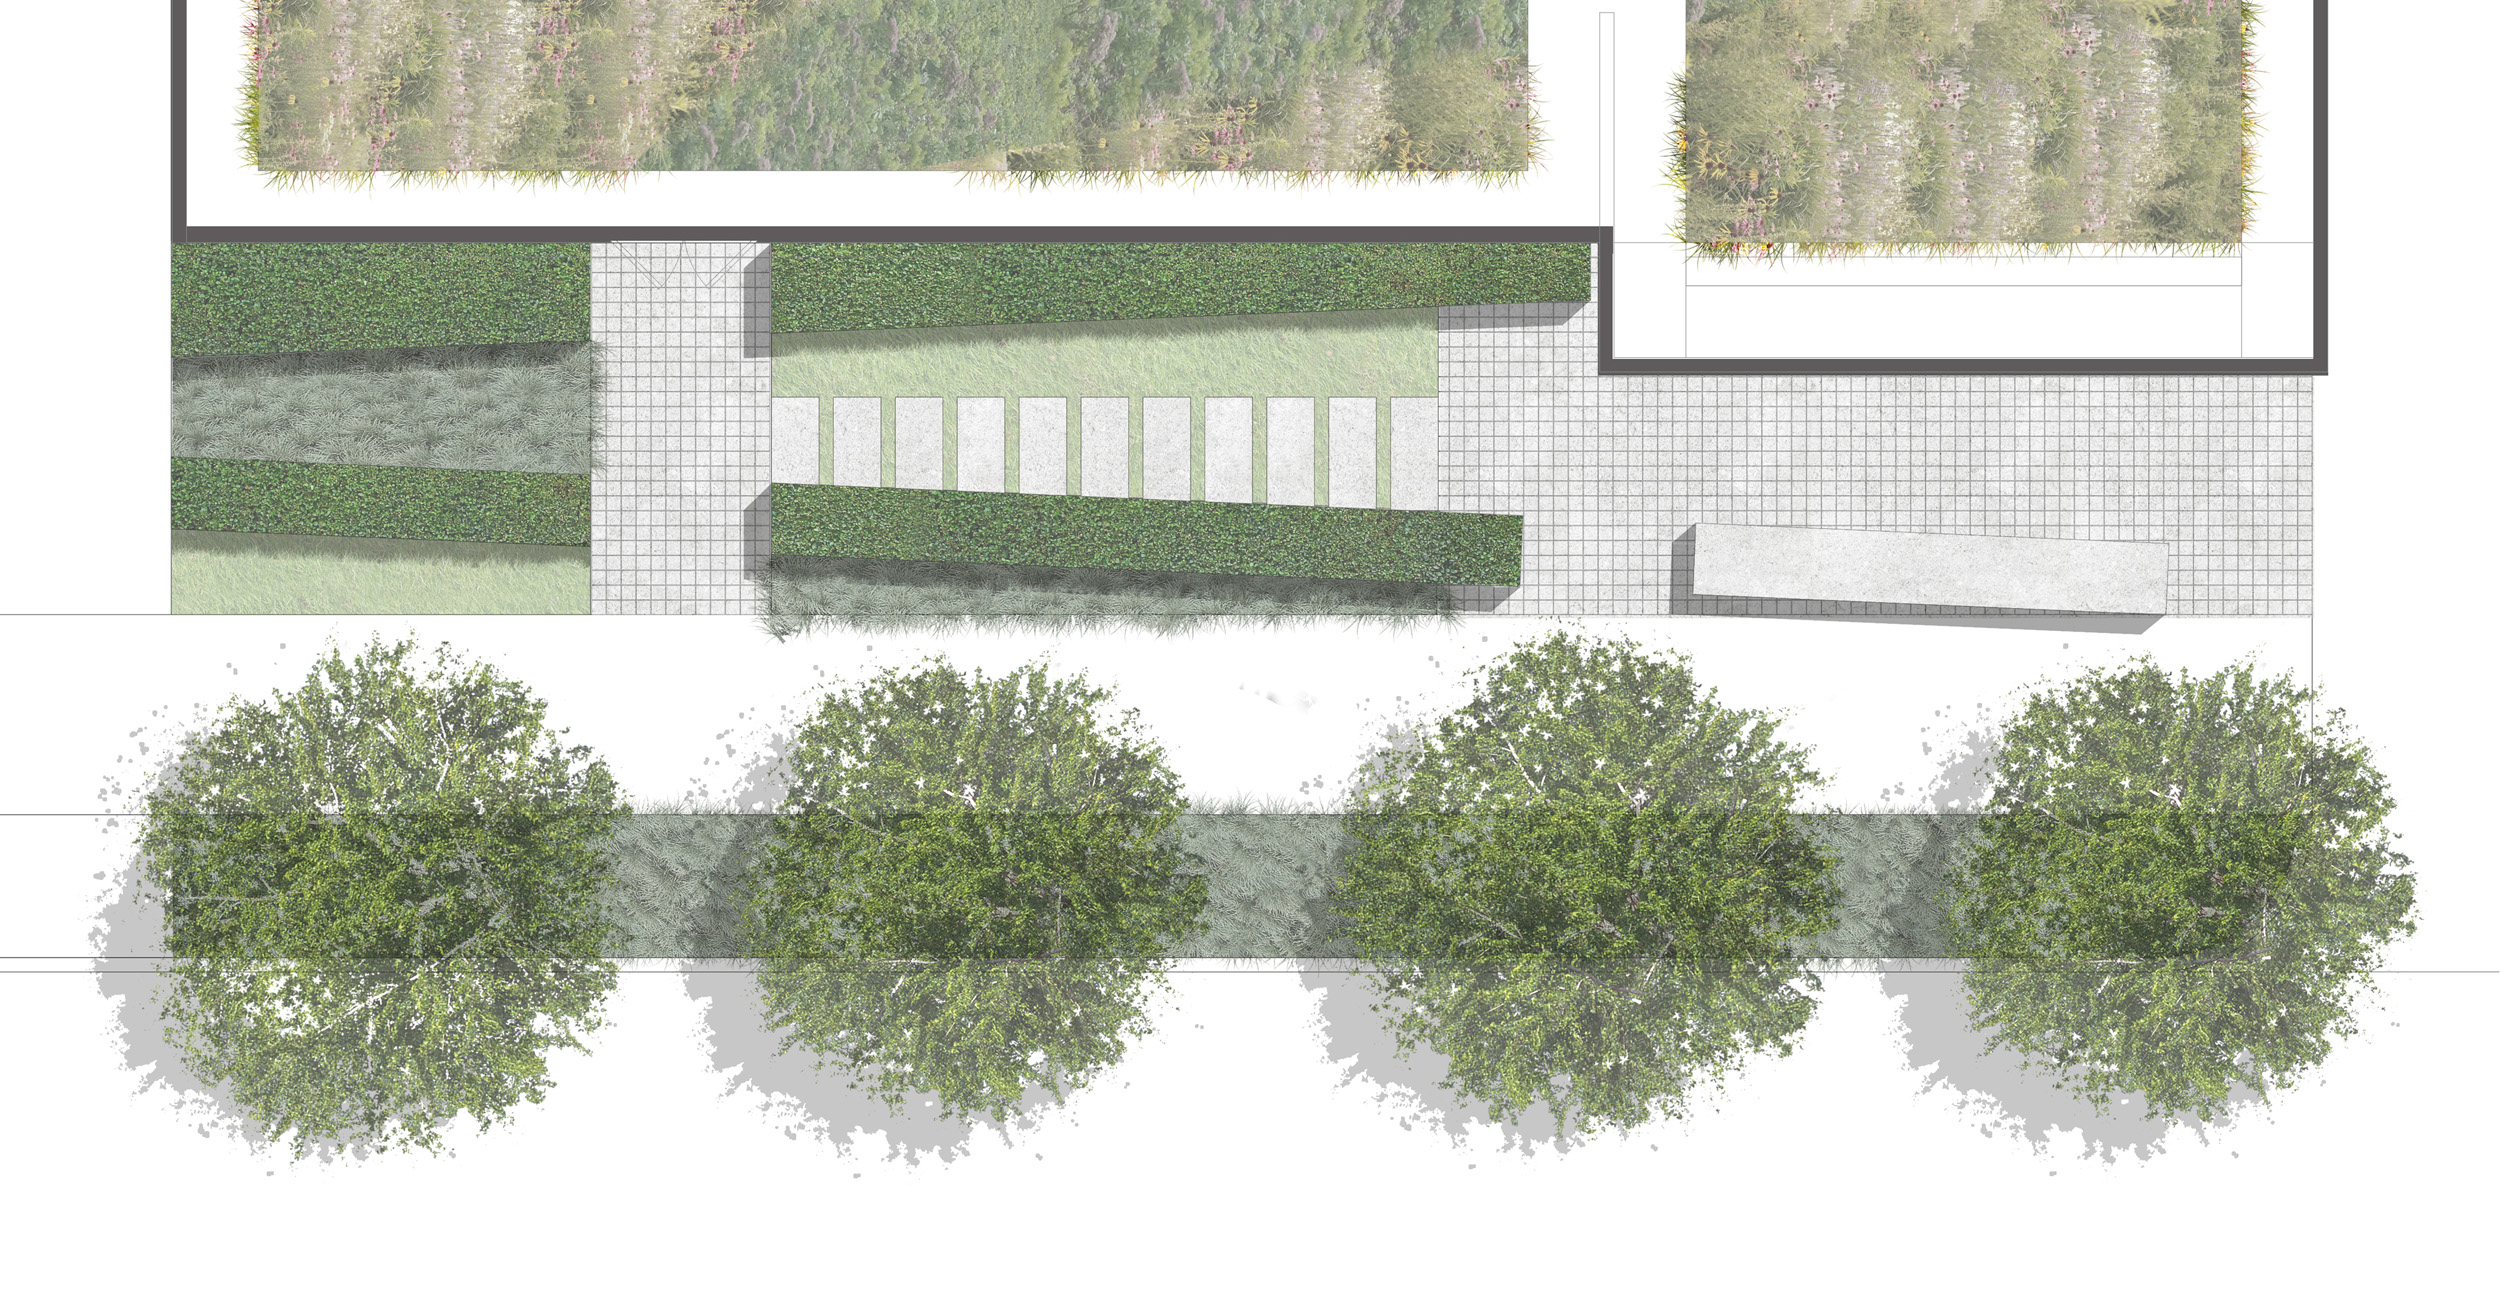 LOCH COLLECTIVE_LANDSCAPE ARCHITECTURE__KENNEDY ARTIST HOUSE DITTO RESIDENTIAL_03.jpg